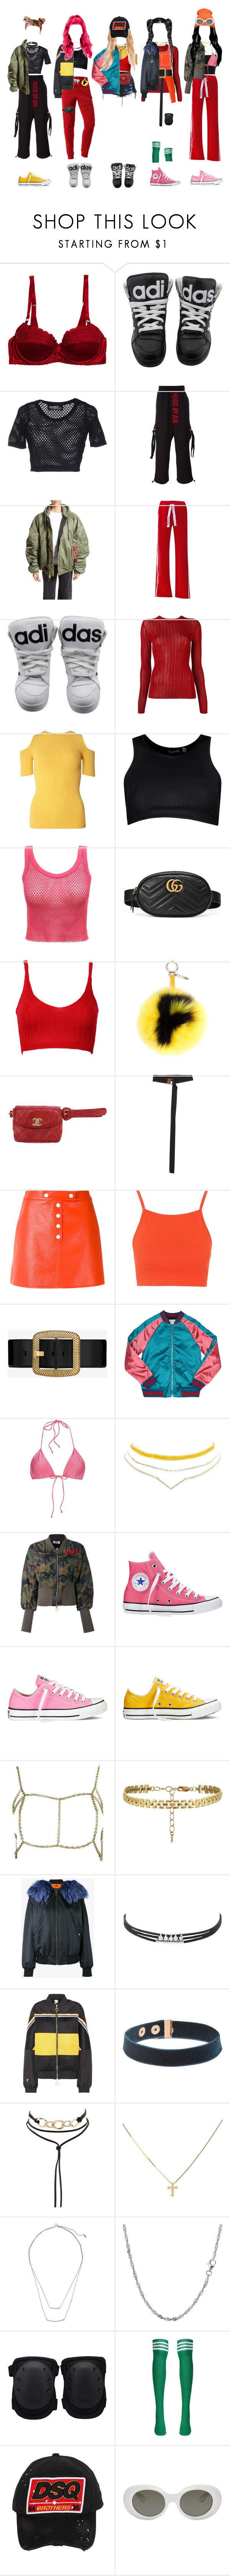 """""""✨ BLING BLING  ✨"""" by xxeucliffexx ❤ liked on Polyvore featuring STELLA McCARTNEY, Jeremy Scott, Hood by Air, Vetements, DKNY, Dorothy Perkins, Boohoo, Gucci, WithChic and Fendi"""